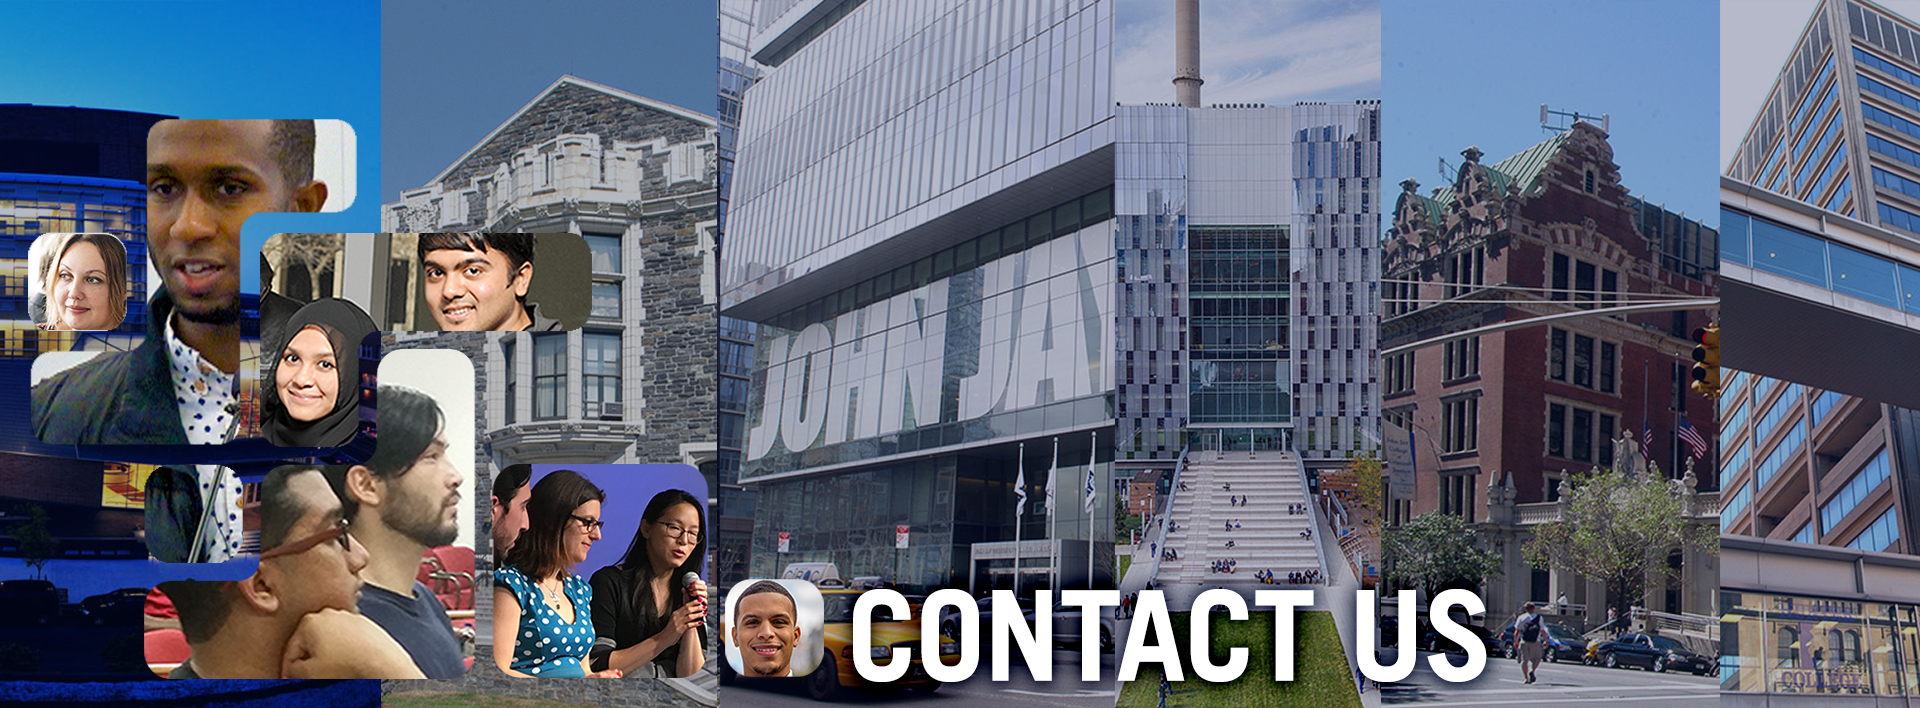 CONTACT US graphic for CUNY Tech Consortium